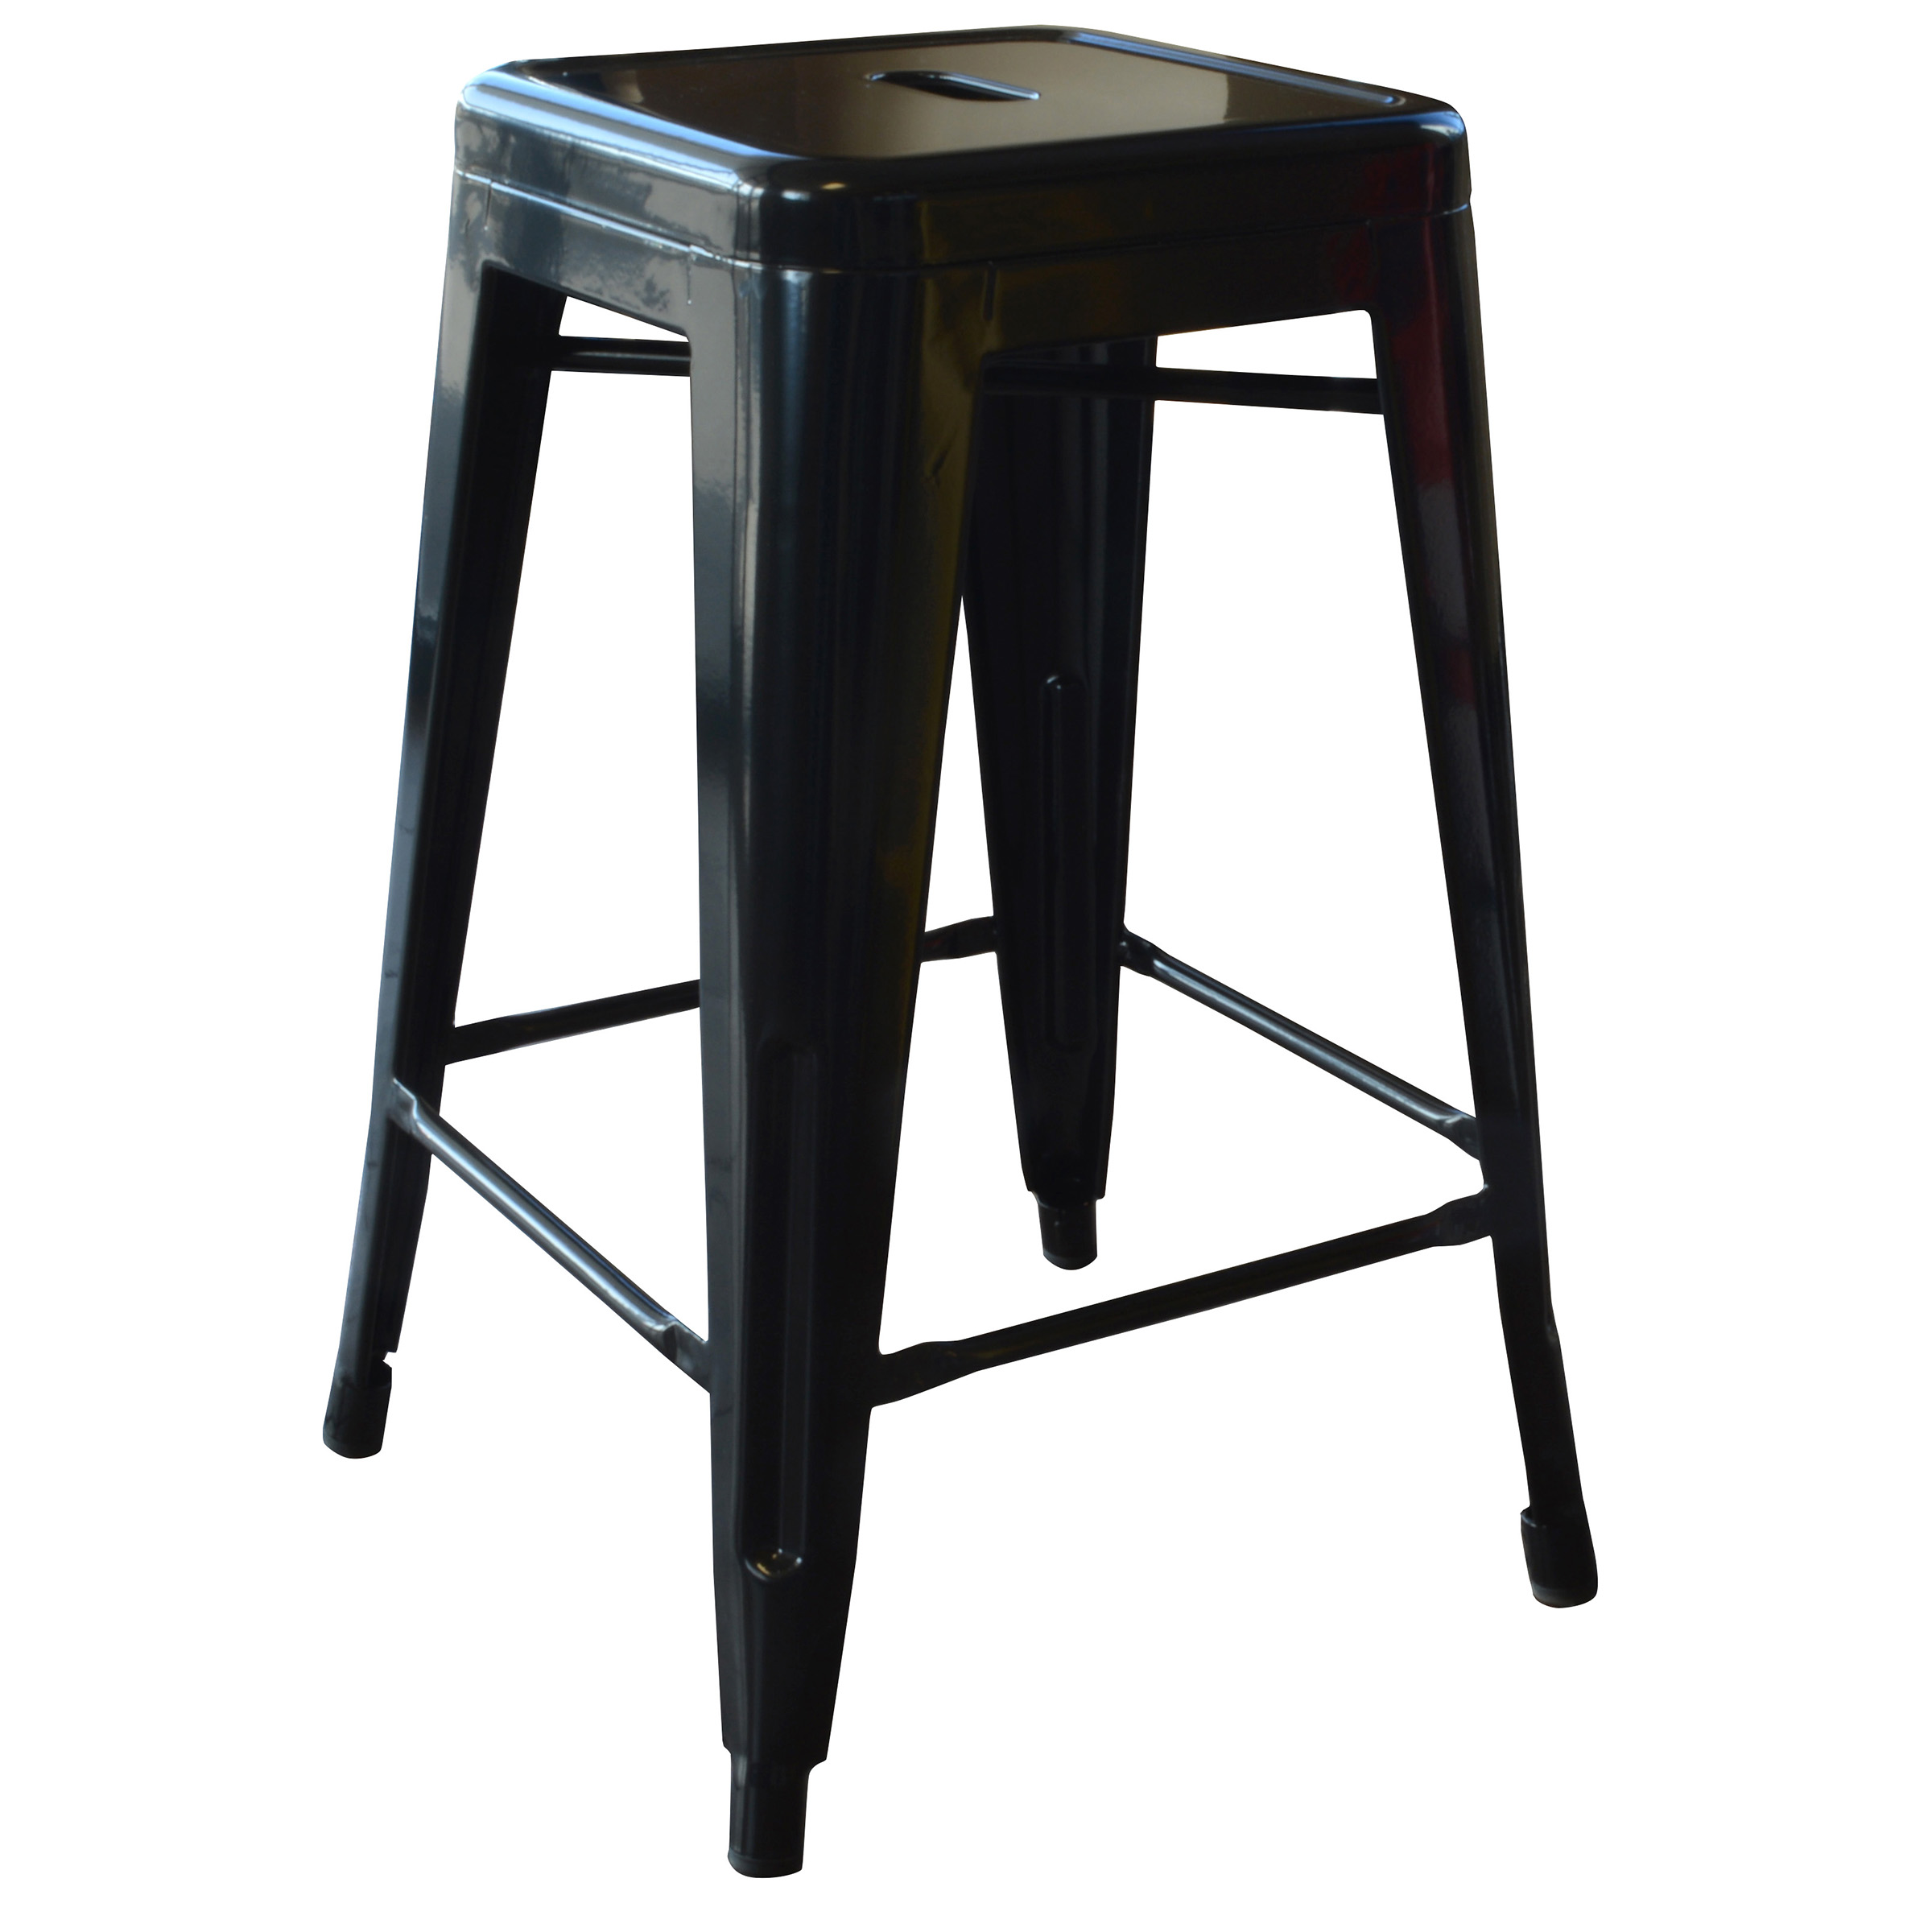 AmeriHome Loft Black 24 Inch Metal Bar Stool 4 Piece by Buffalo Corp